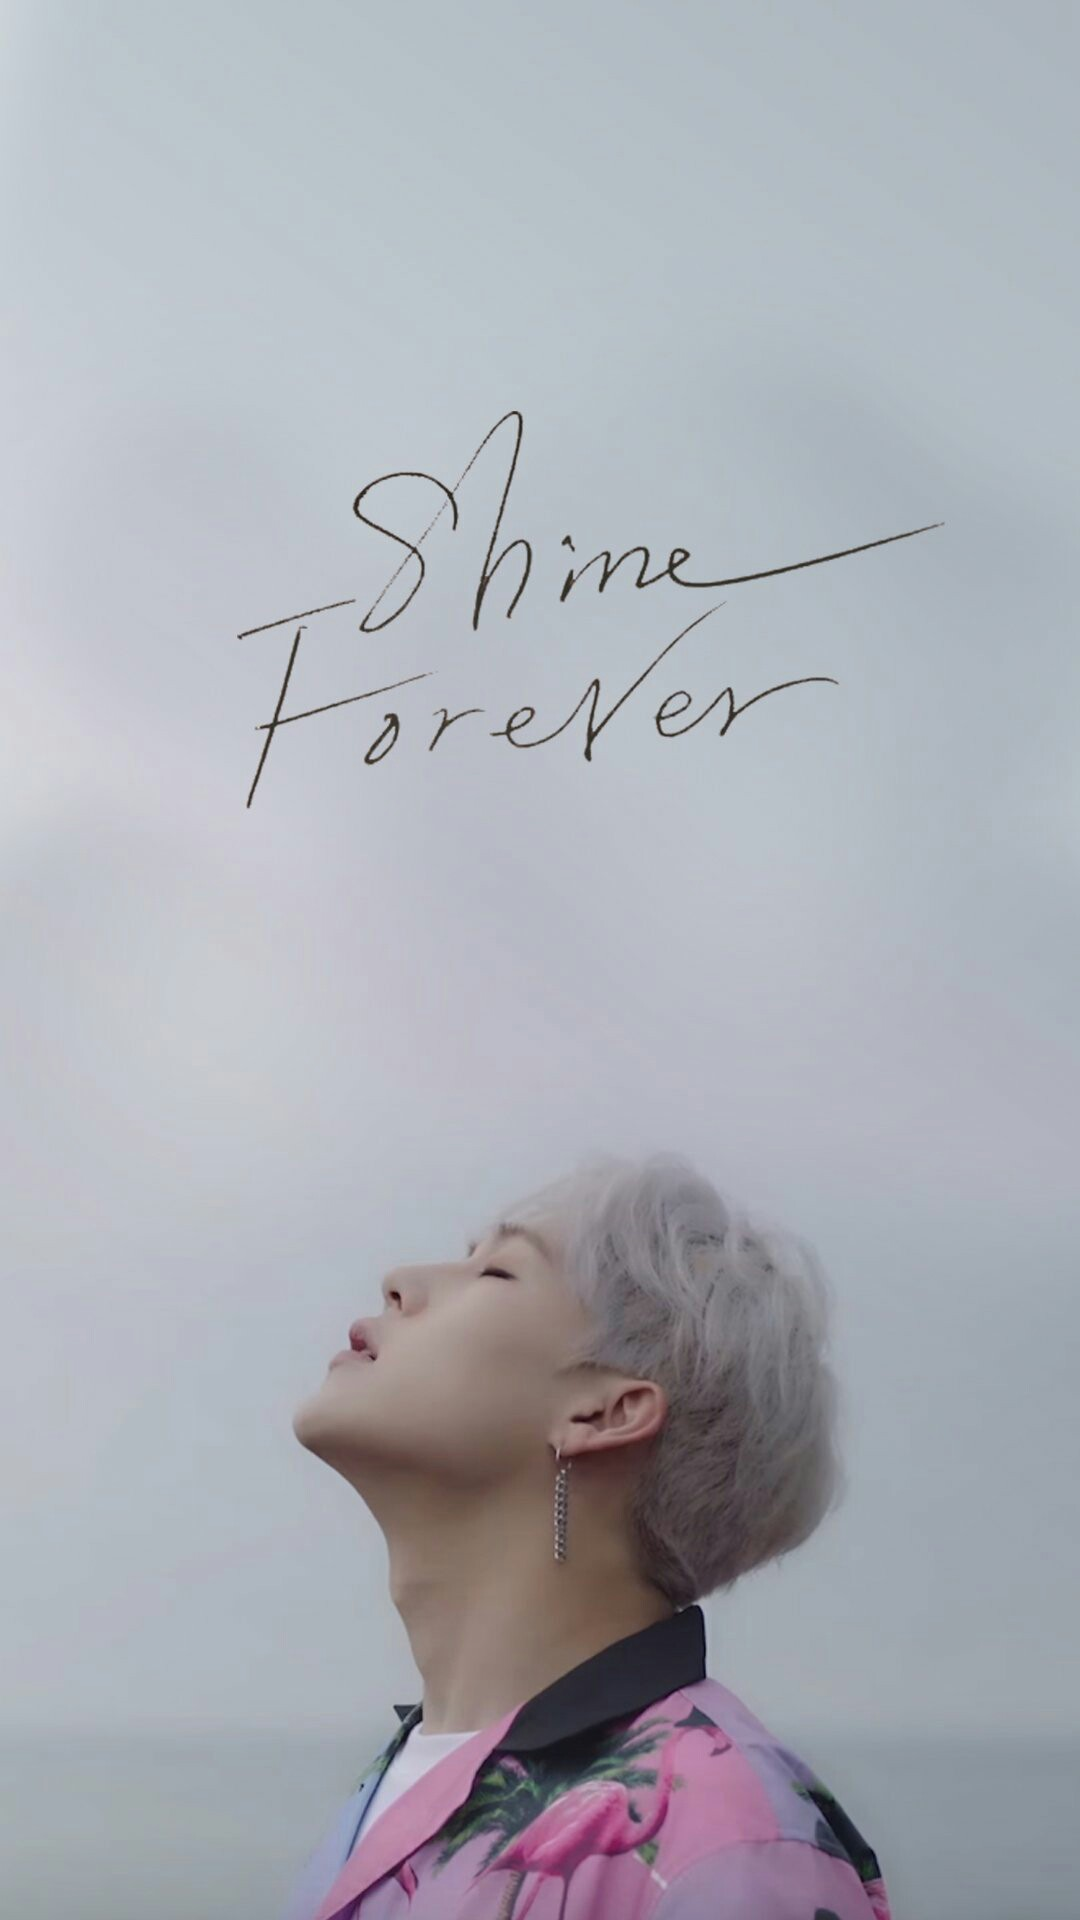 1080x1920 Álbum SHINE_FOREVER #monstax wallpaper [ lockscreens] @mnstxedits